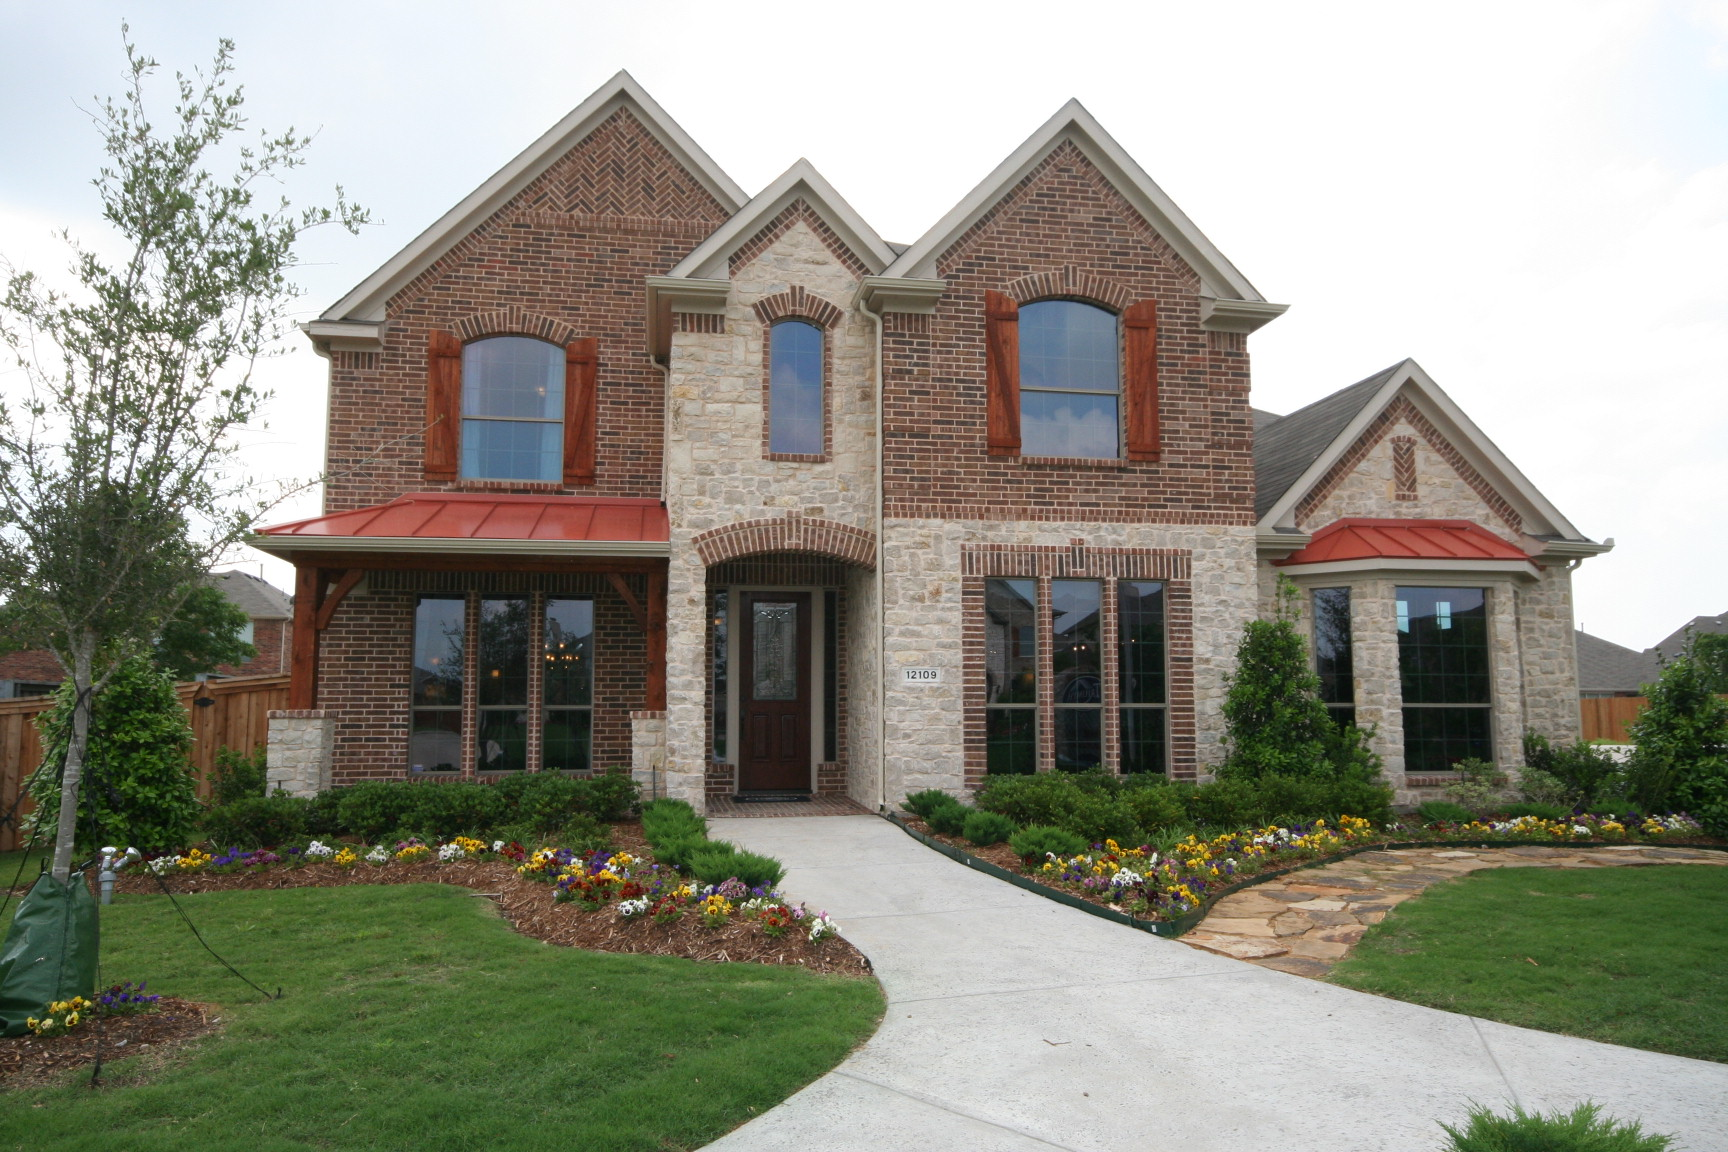 Download this Take Pride Promoting The New Home Builders Beautiful Design picture